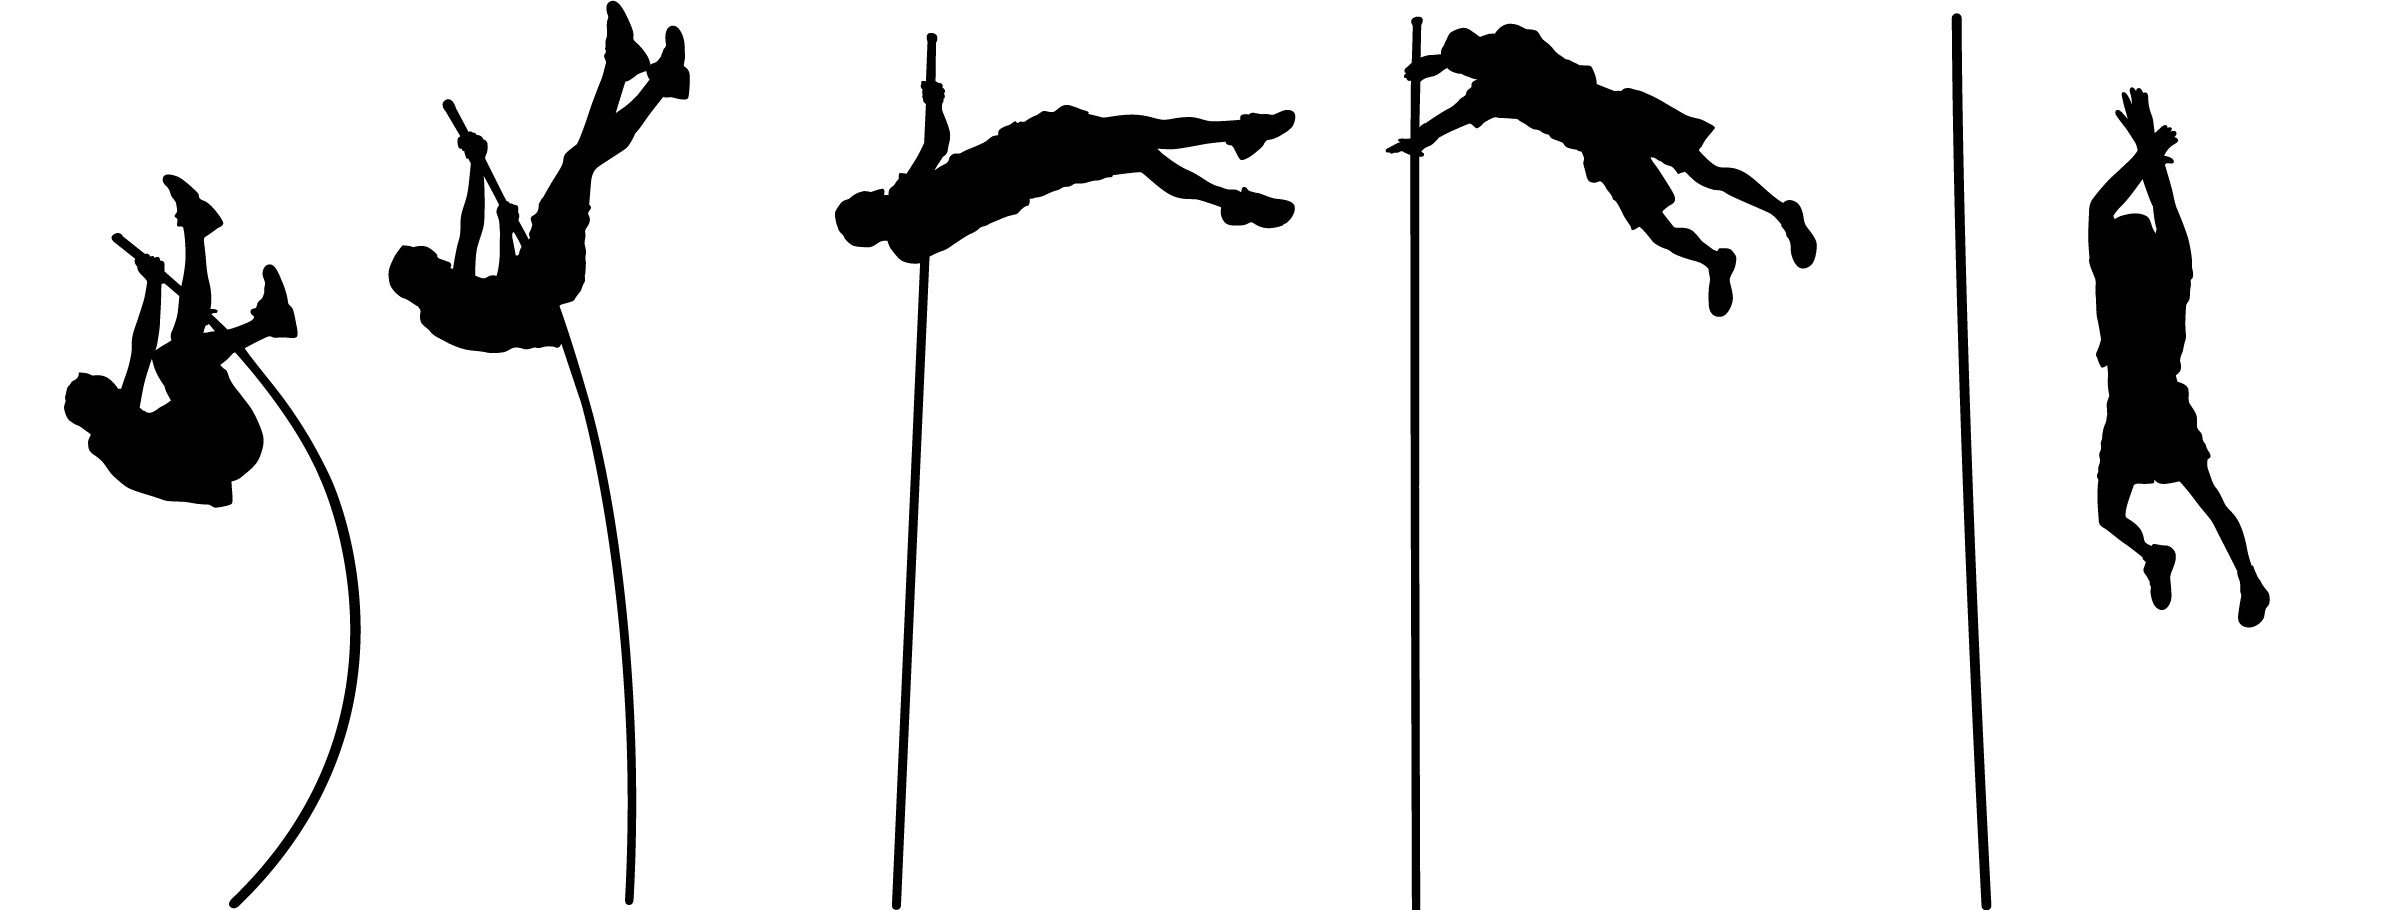 Pole vault clip art vector transparent library 17 Best images about Henry & Ryan Track & Field on Pinterest ... vector transparent library